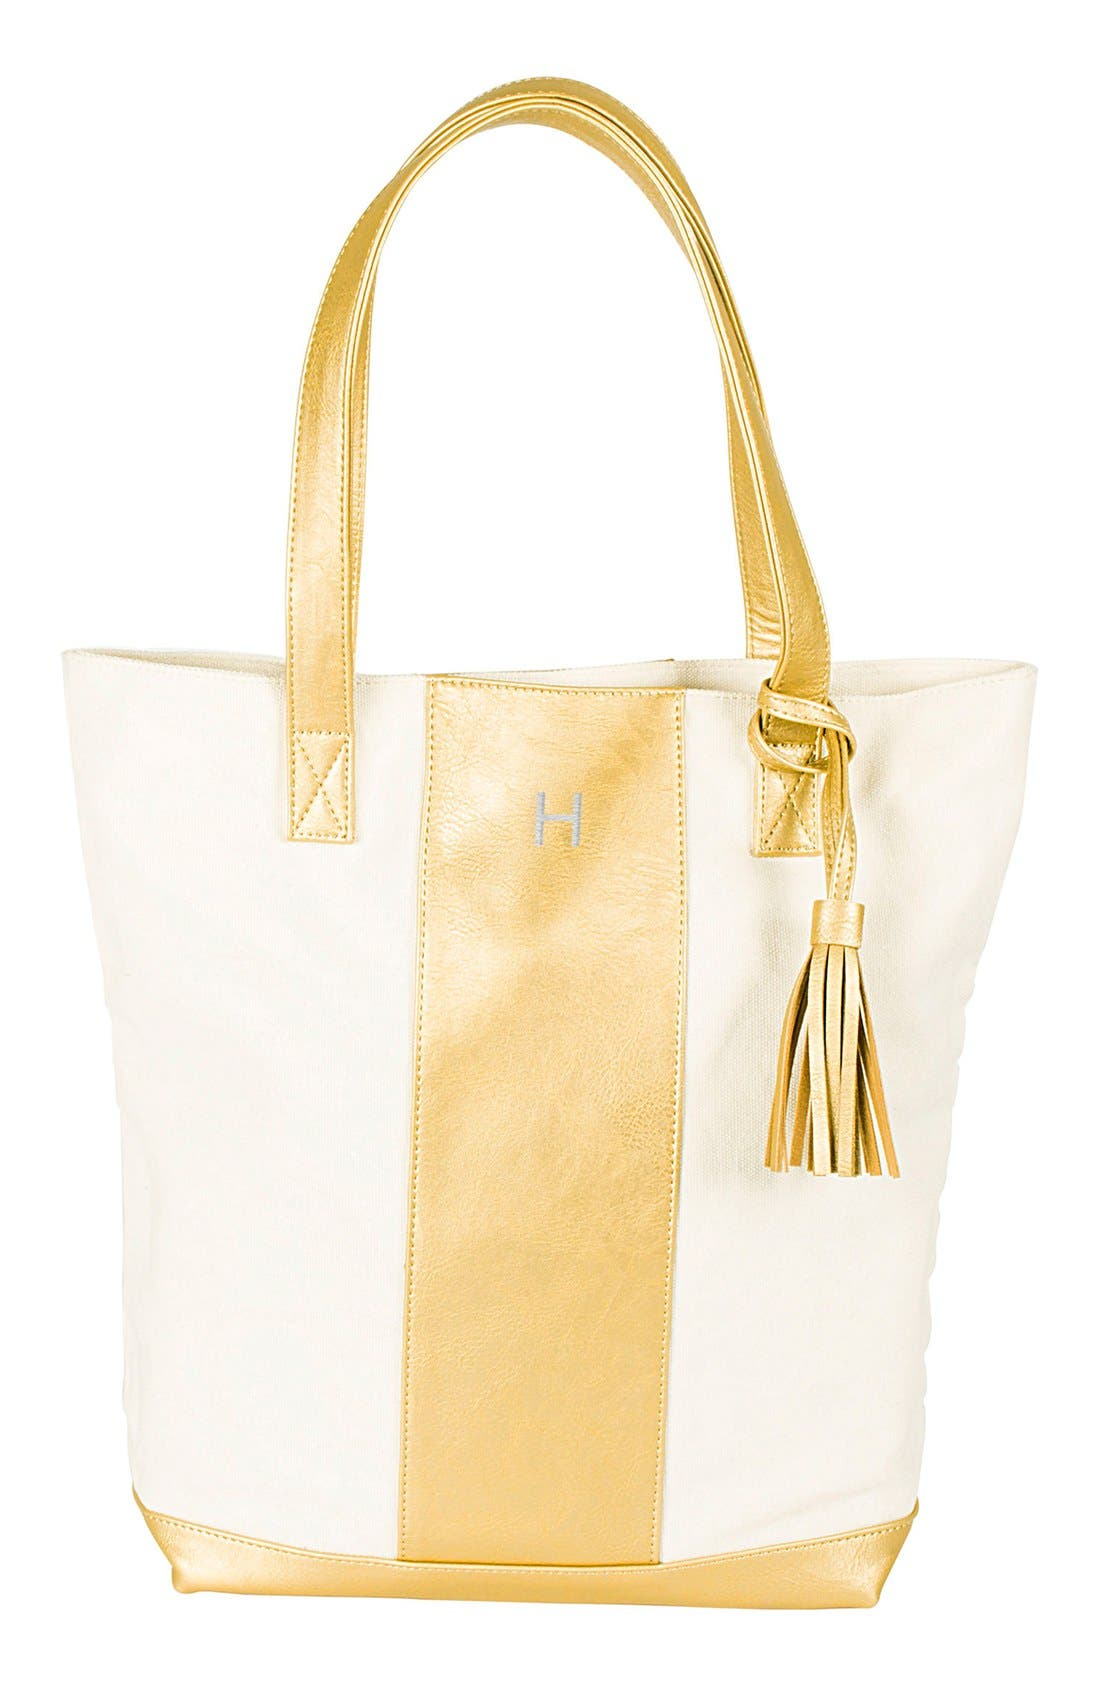 Cathy's Concepts Monogram Tote